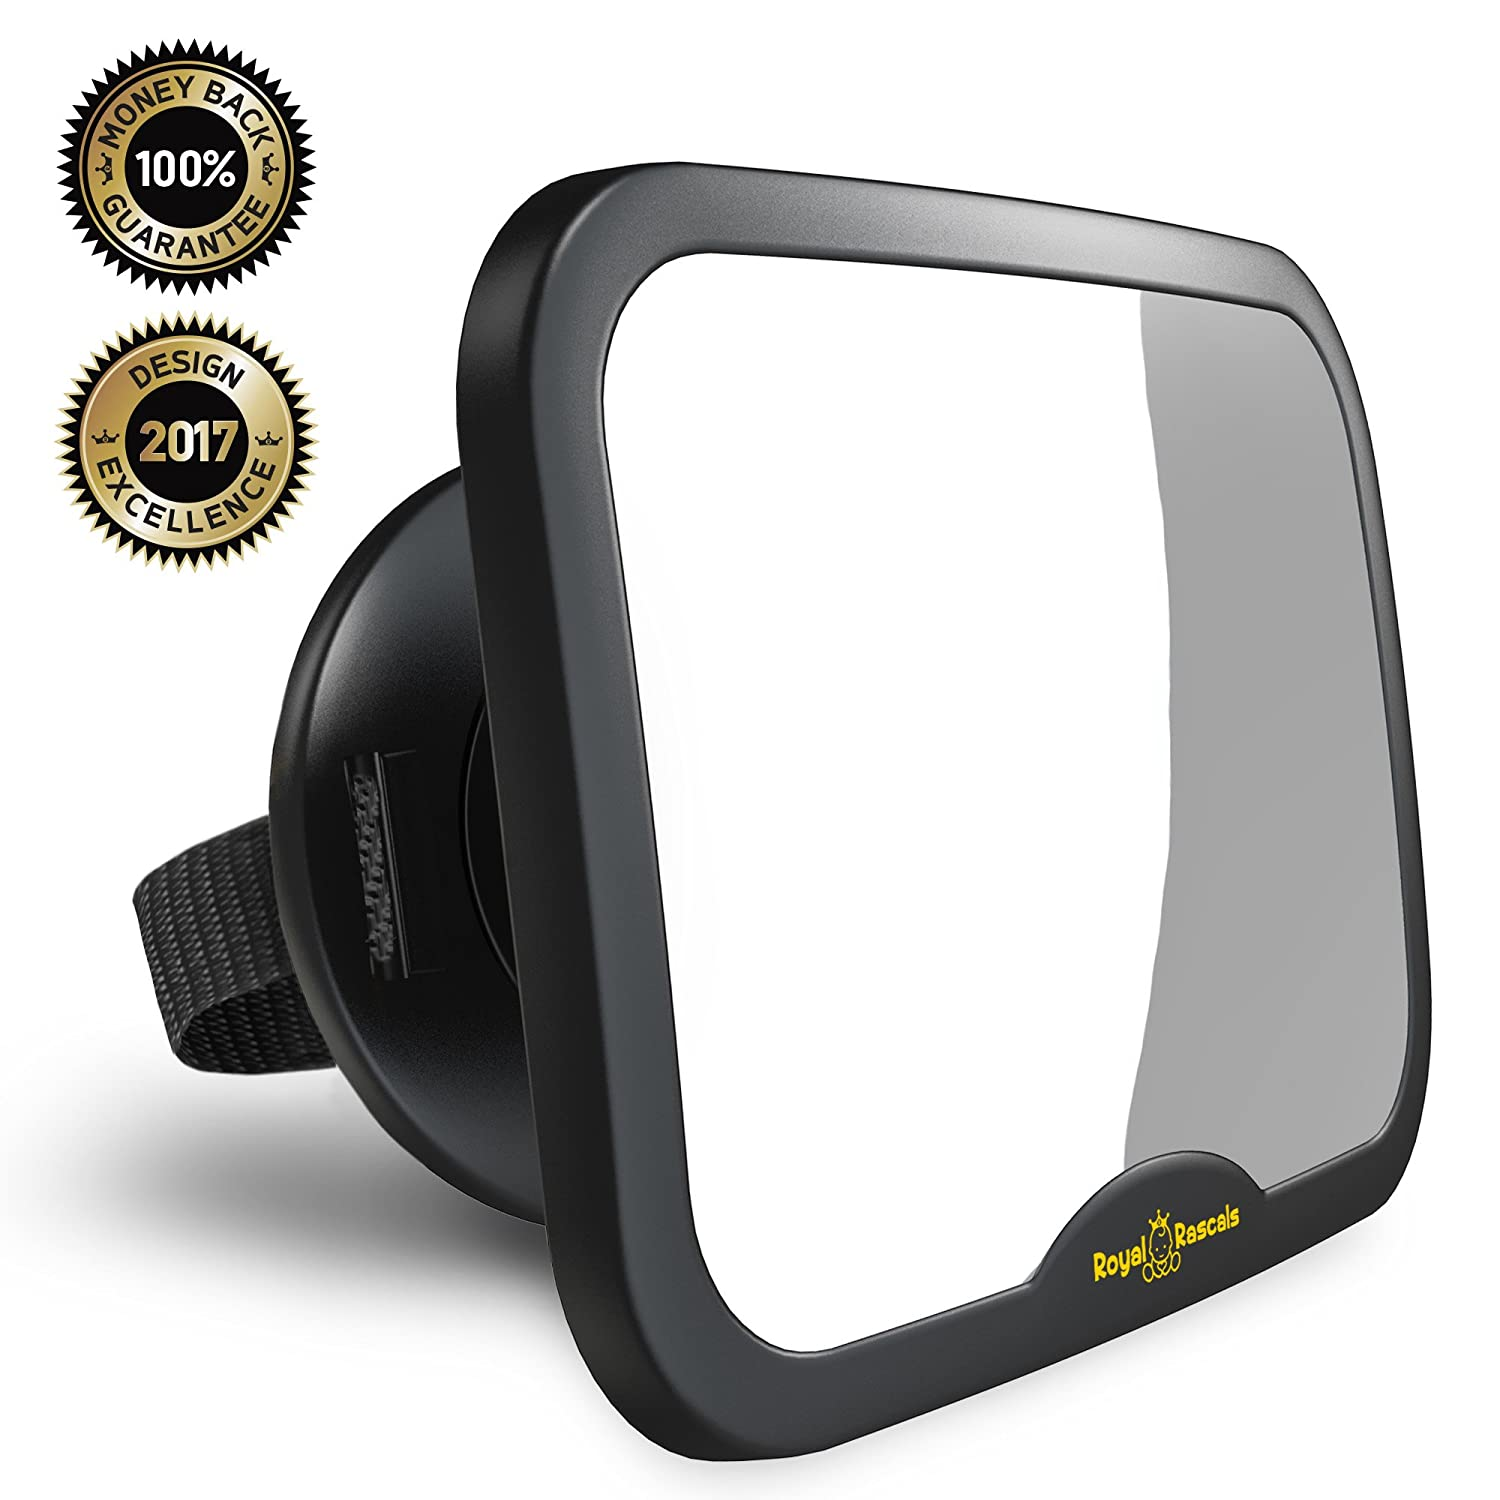 NEW & IMPROVED MODEL | ROYAL RASCALS Baby Car Mirror | #1 SAFEST rear view mirror for rearward facing child seat | BLACK | Fits any adjustable headrest | 100% shatterproof | ULTRA PREMIUM SAFETY PRODUCT XLR-5